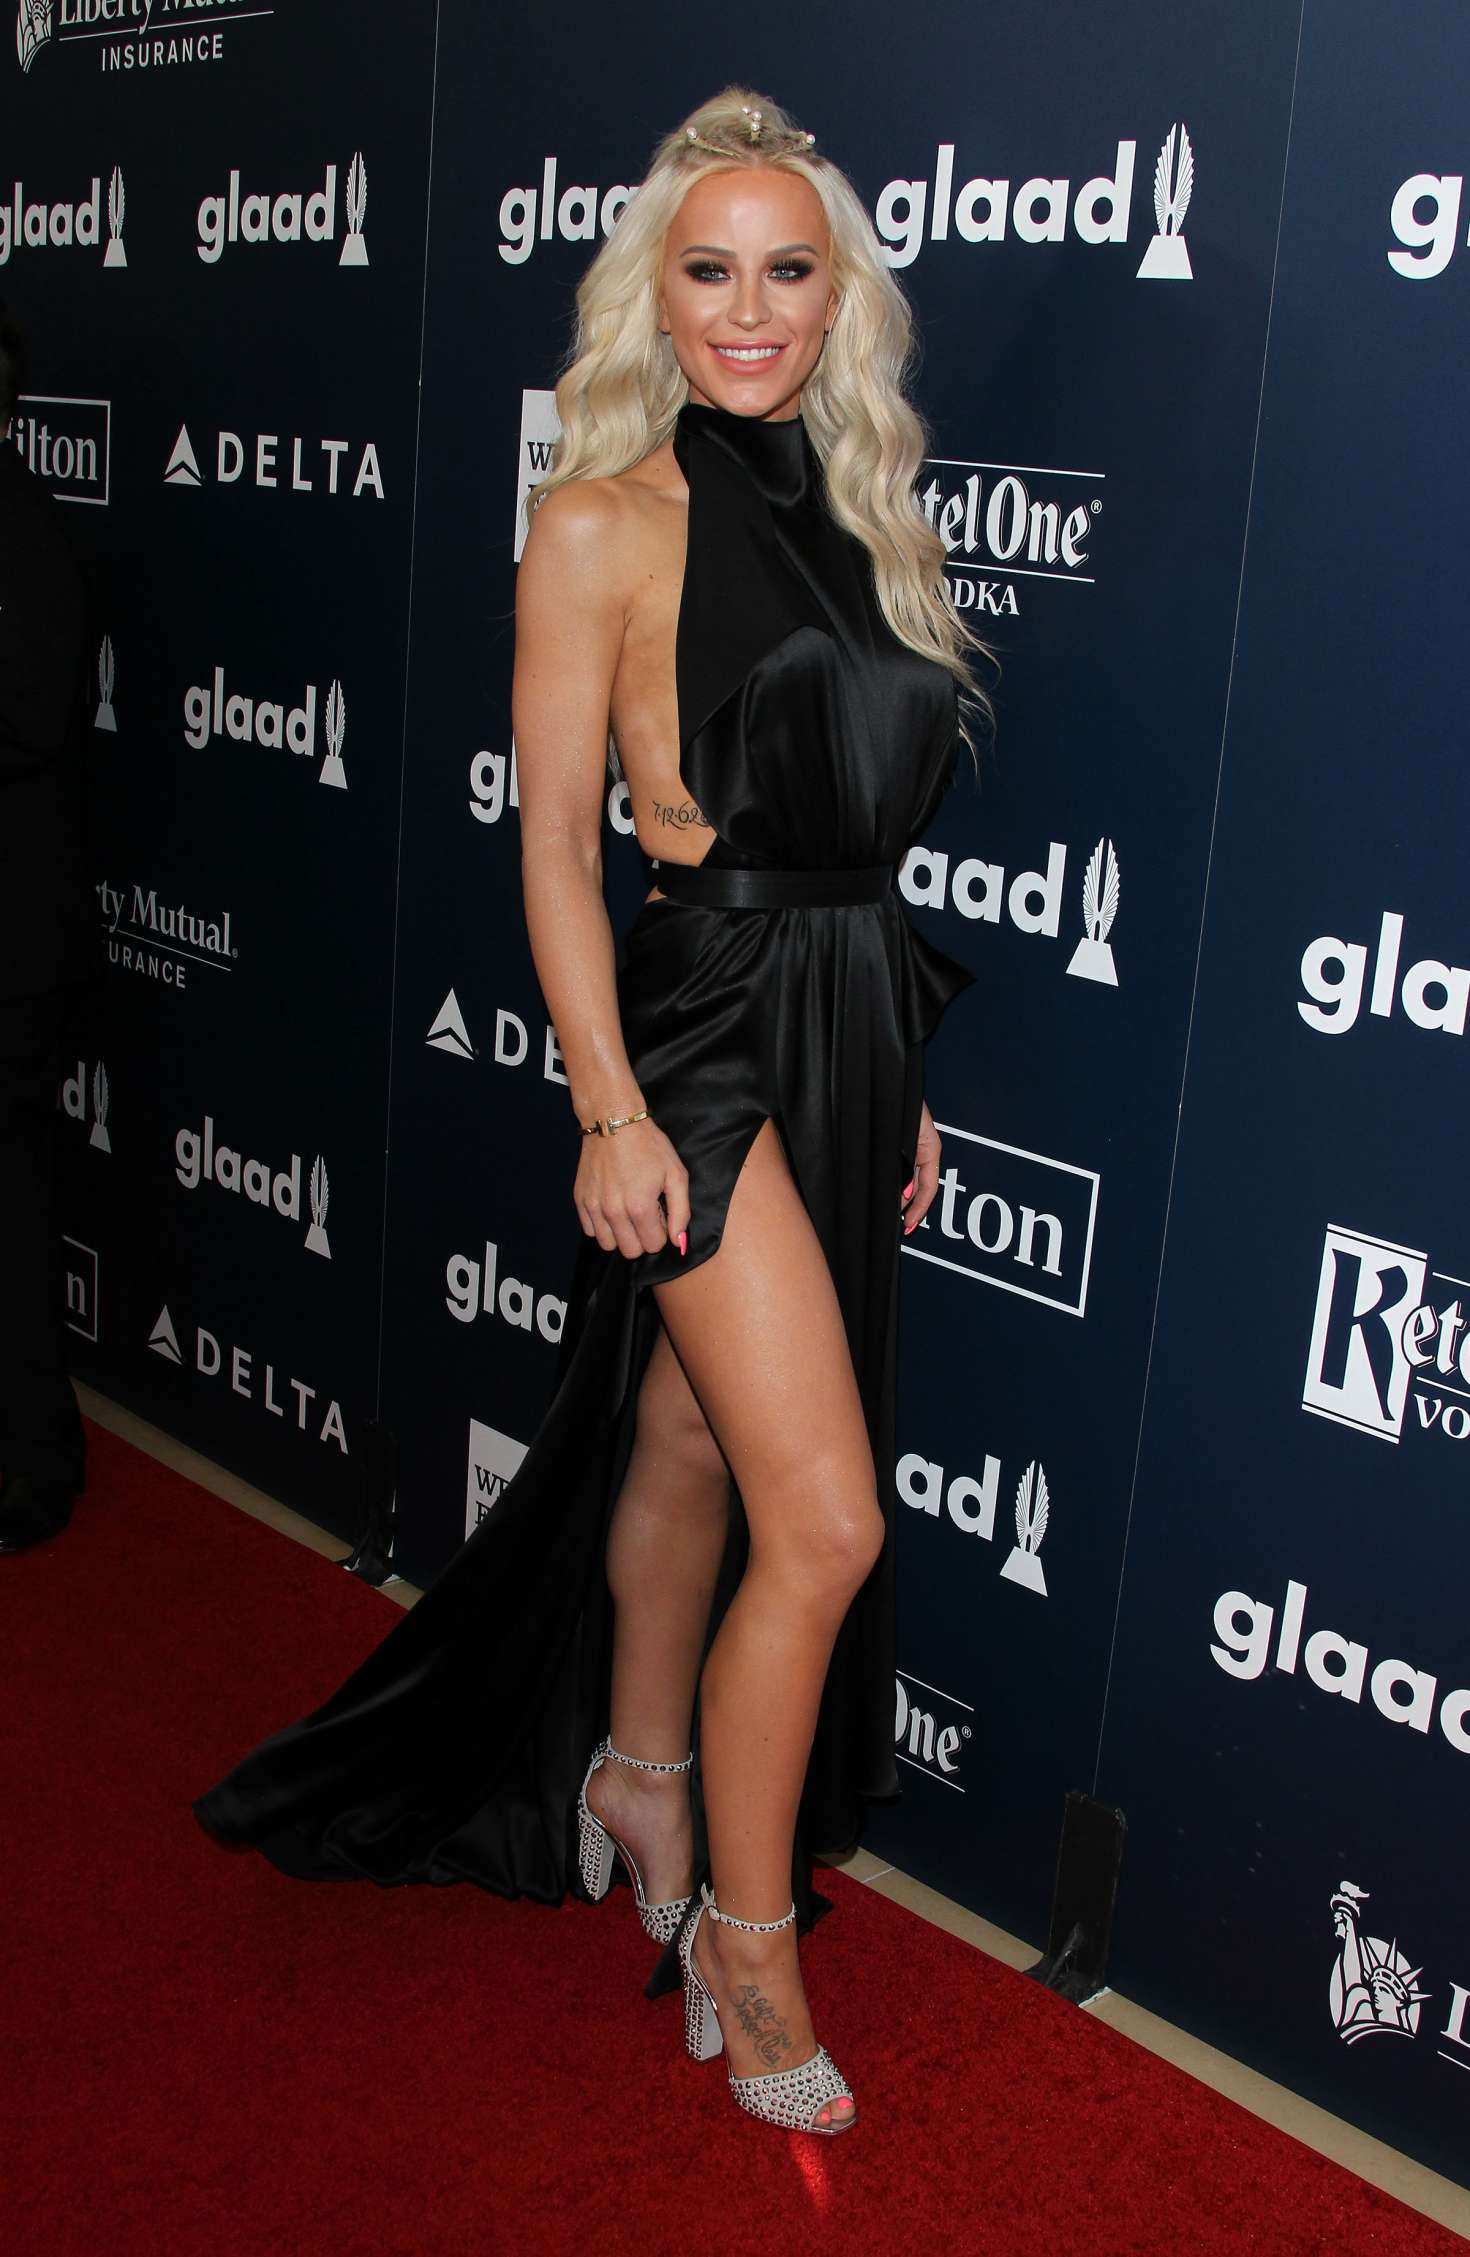 Gigi Gorgeous – 2017 GLAAD Media Awards in Los Angeles